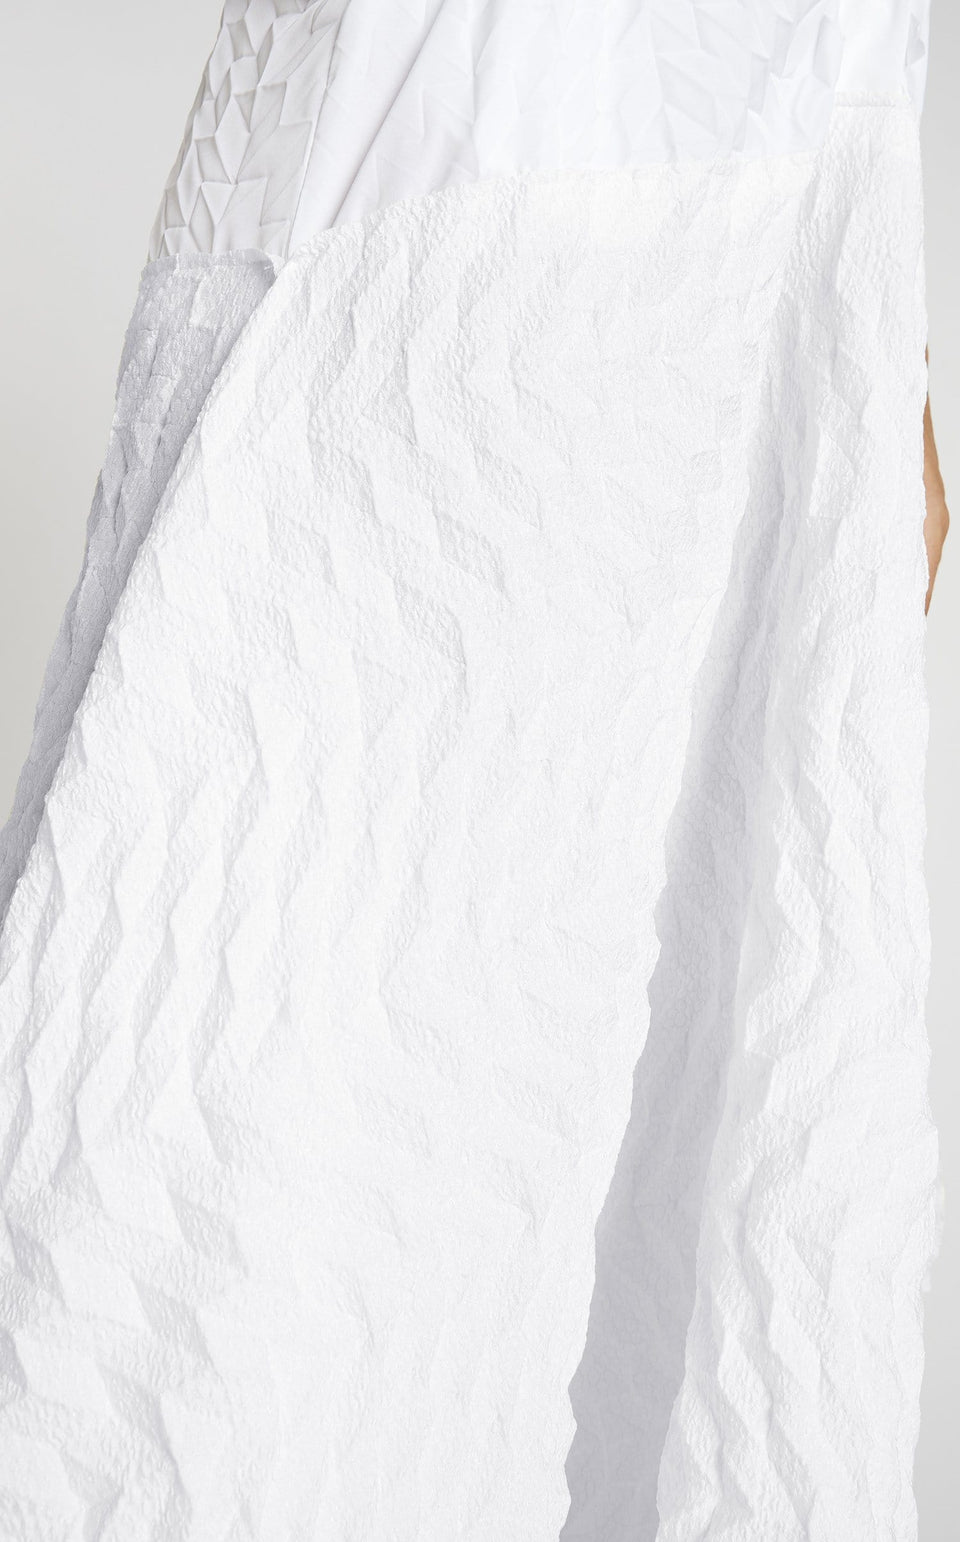 Penhale Dress In White from Roland Mouret